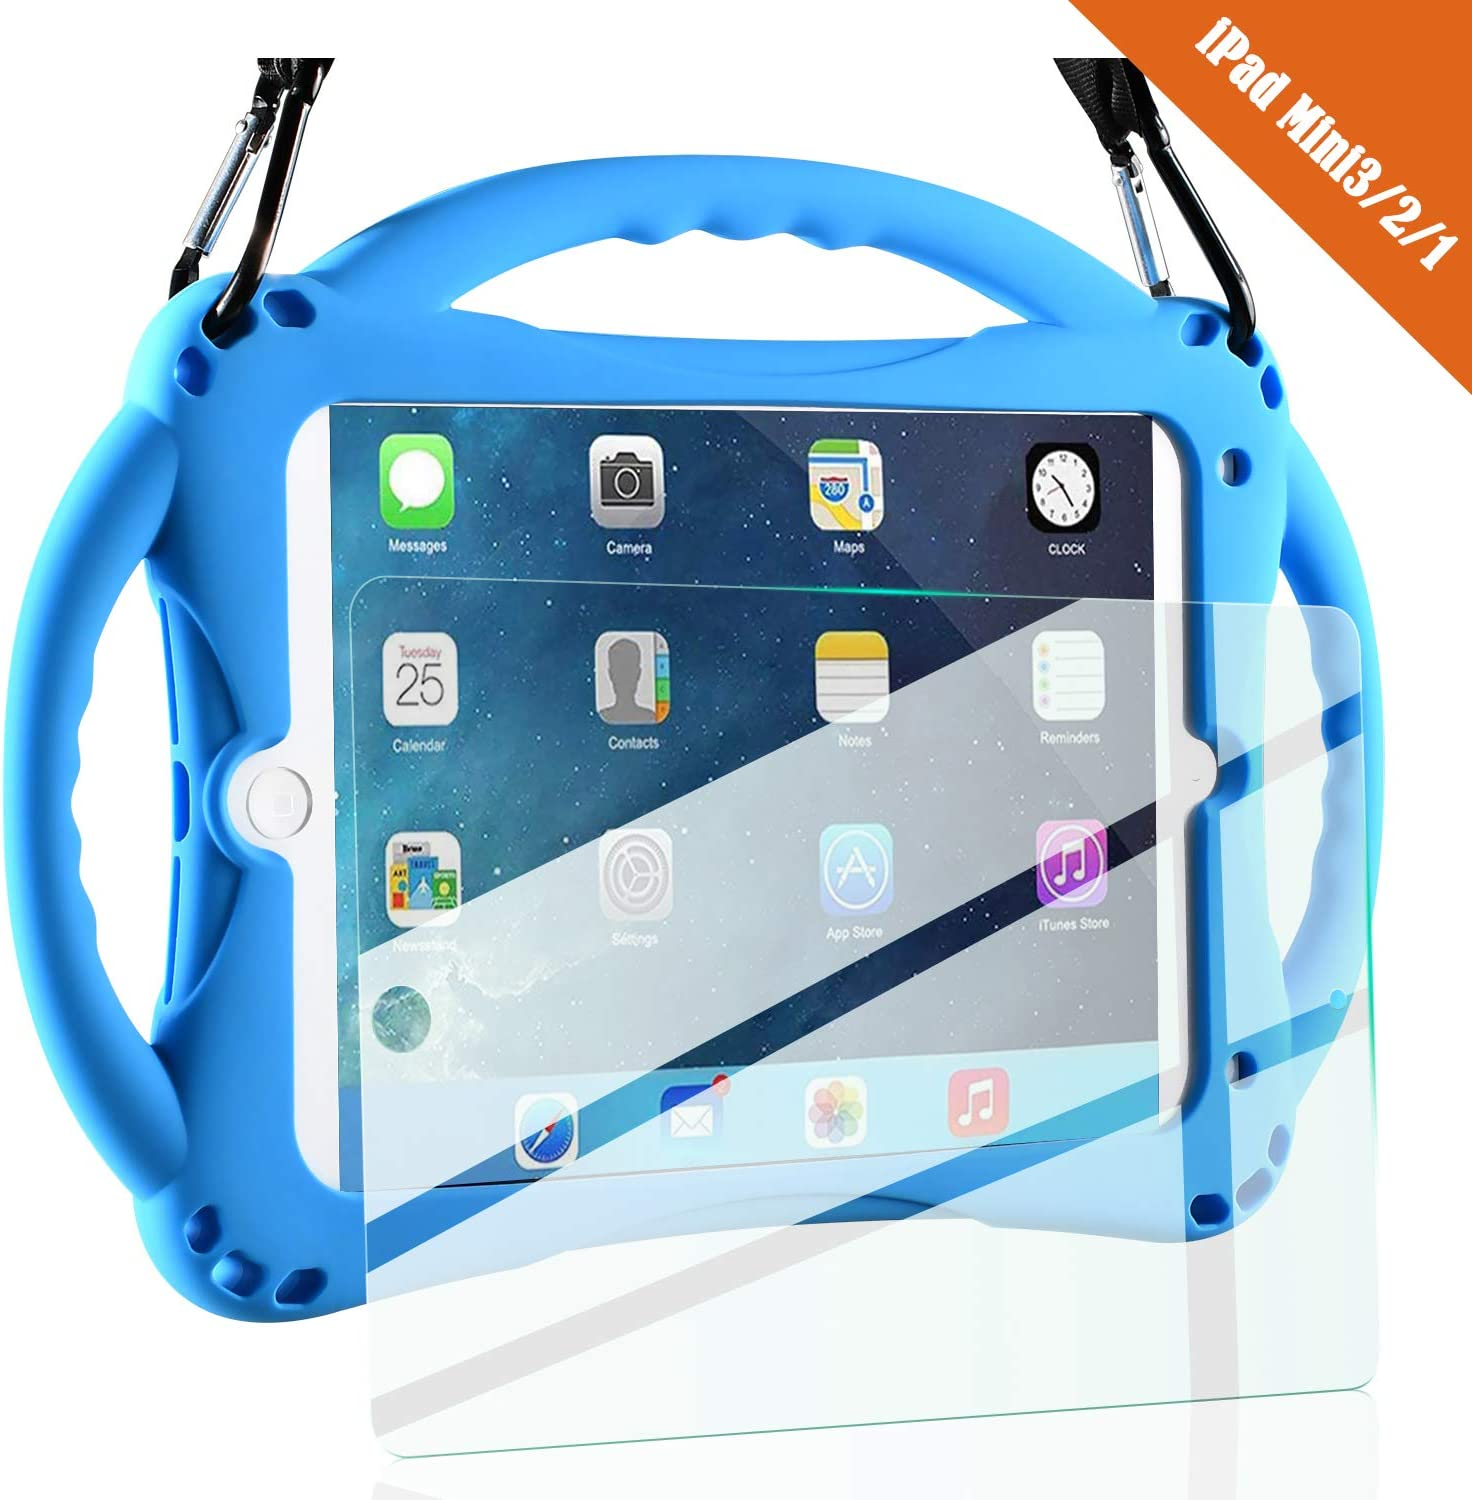 TopEsct iPad Mini Case Kids Shockproof Handle Stand Cover&(Tempered Glass Screen Protector) for iPad Mini, Mini 2, Mini 3 and iPad Mini Retina Models (Blue)